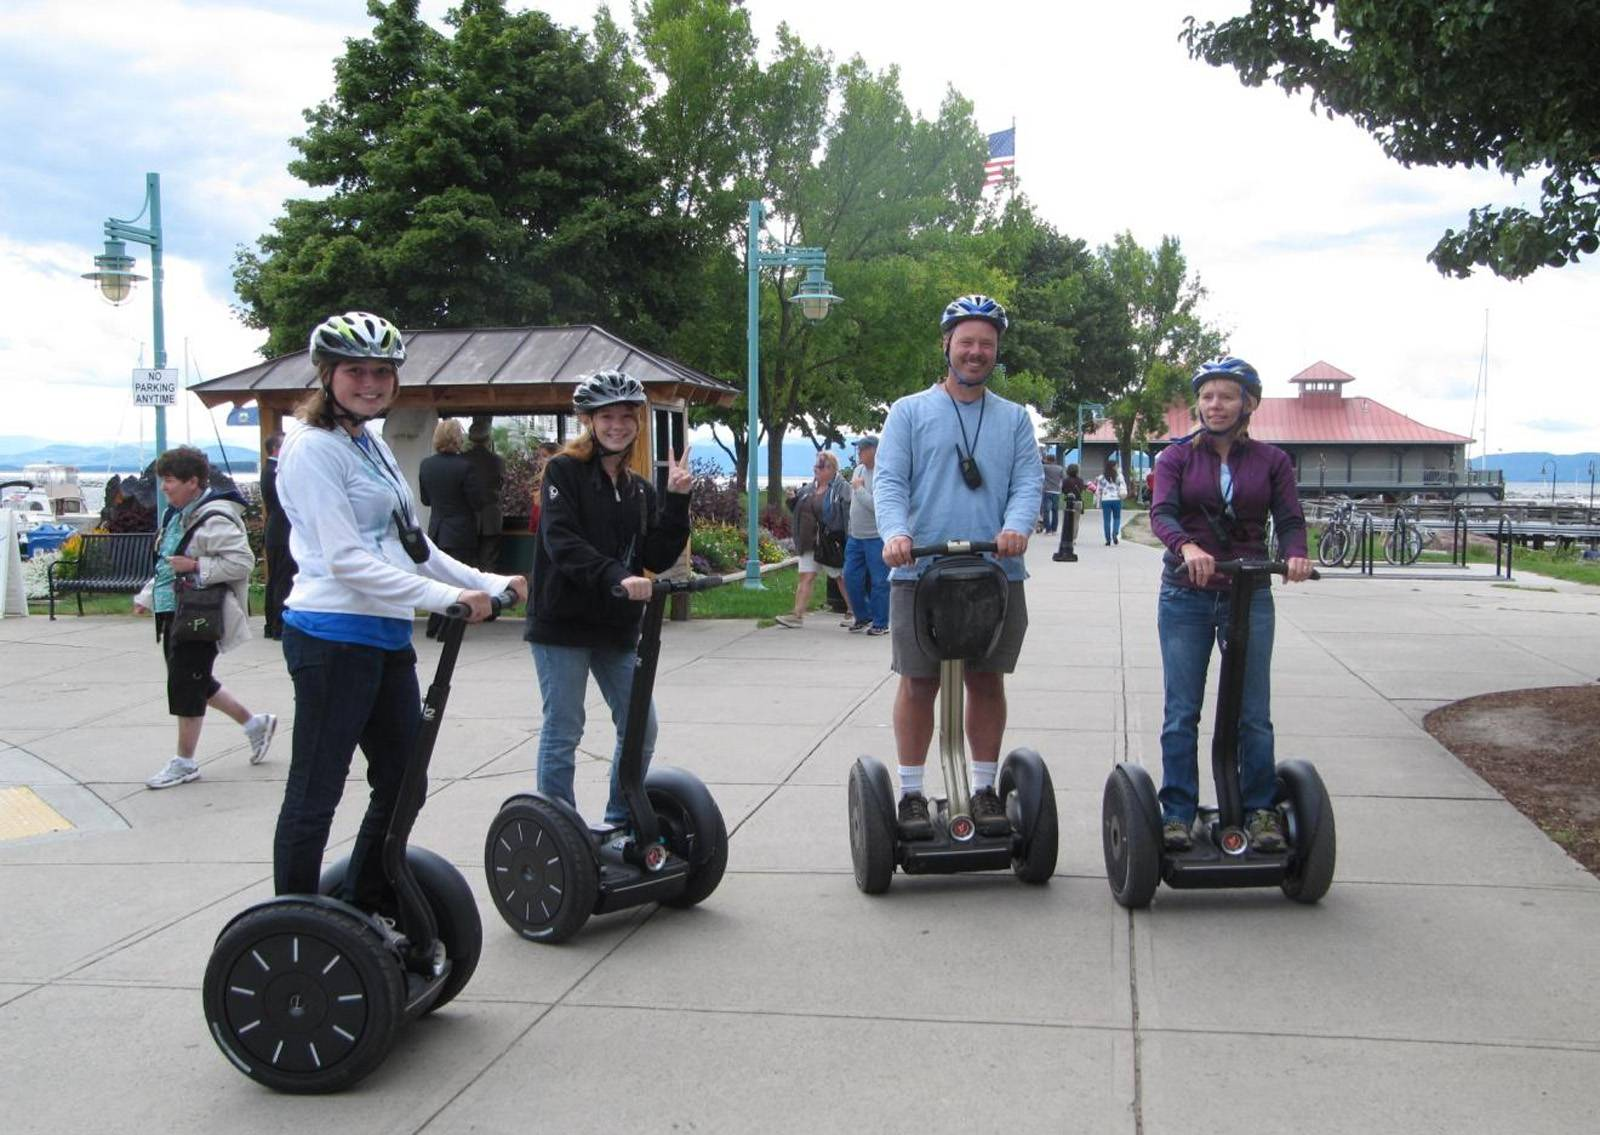 Burlington Segway tour Vermont - ideas for adventure microweddings in Vermont